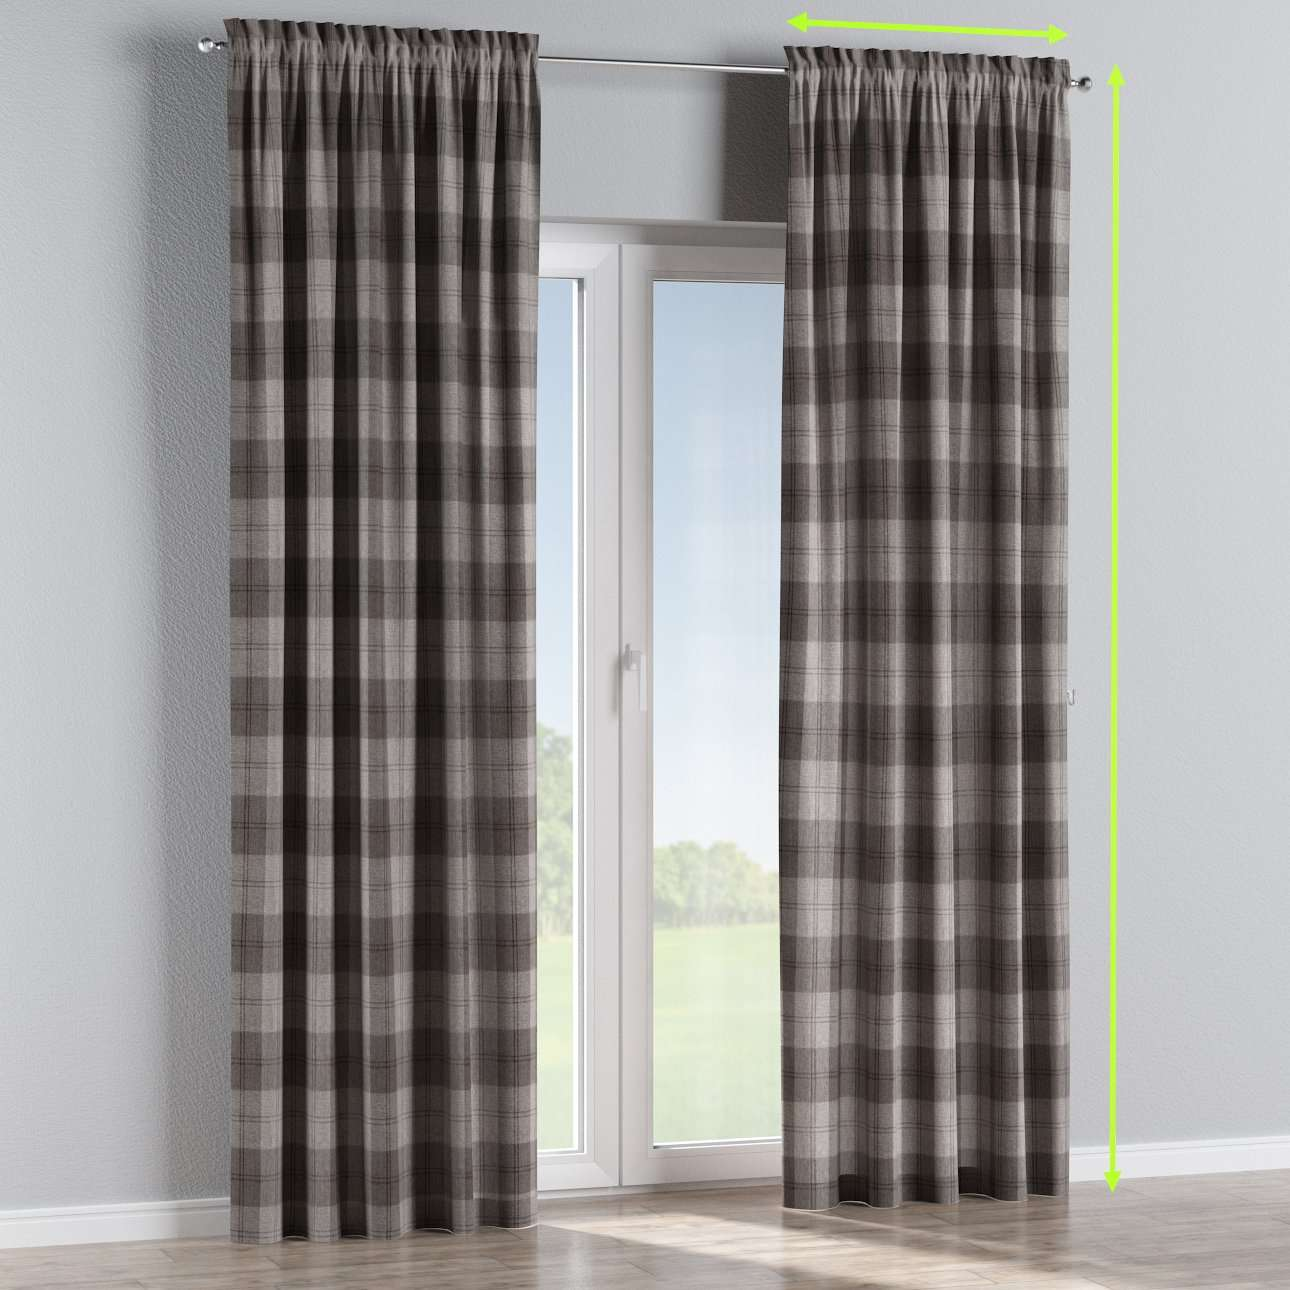 Slot and frill curtains in collection Edinburgh , fabric: 115-75